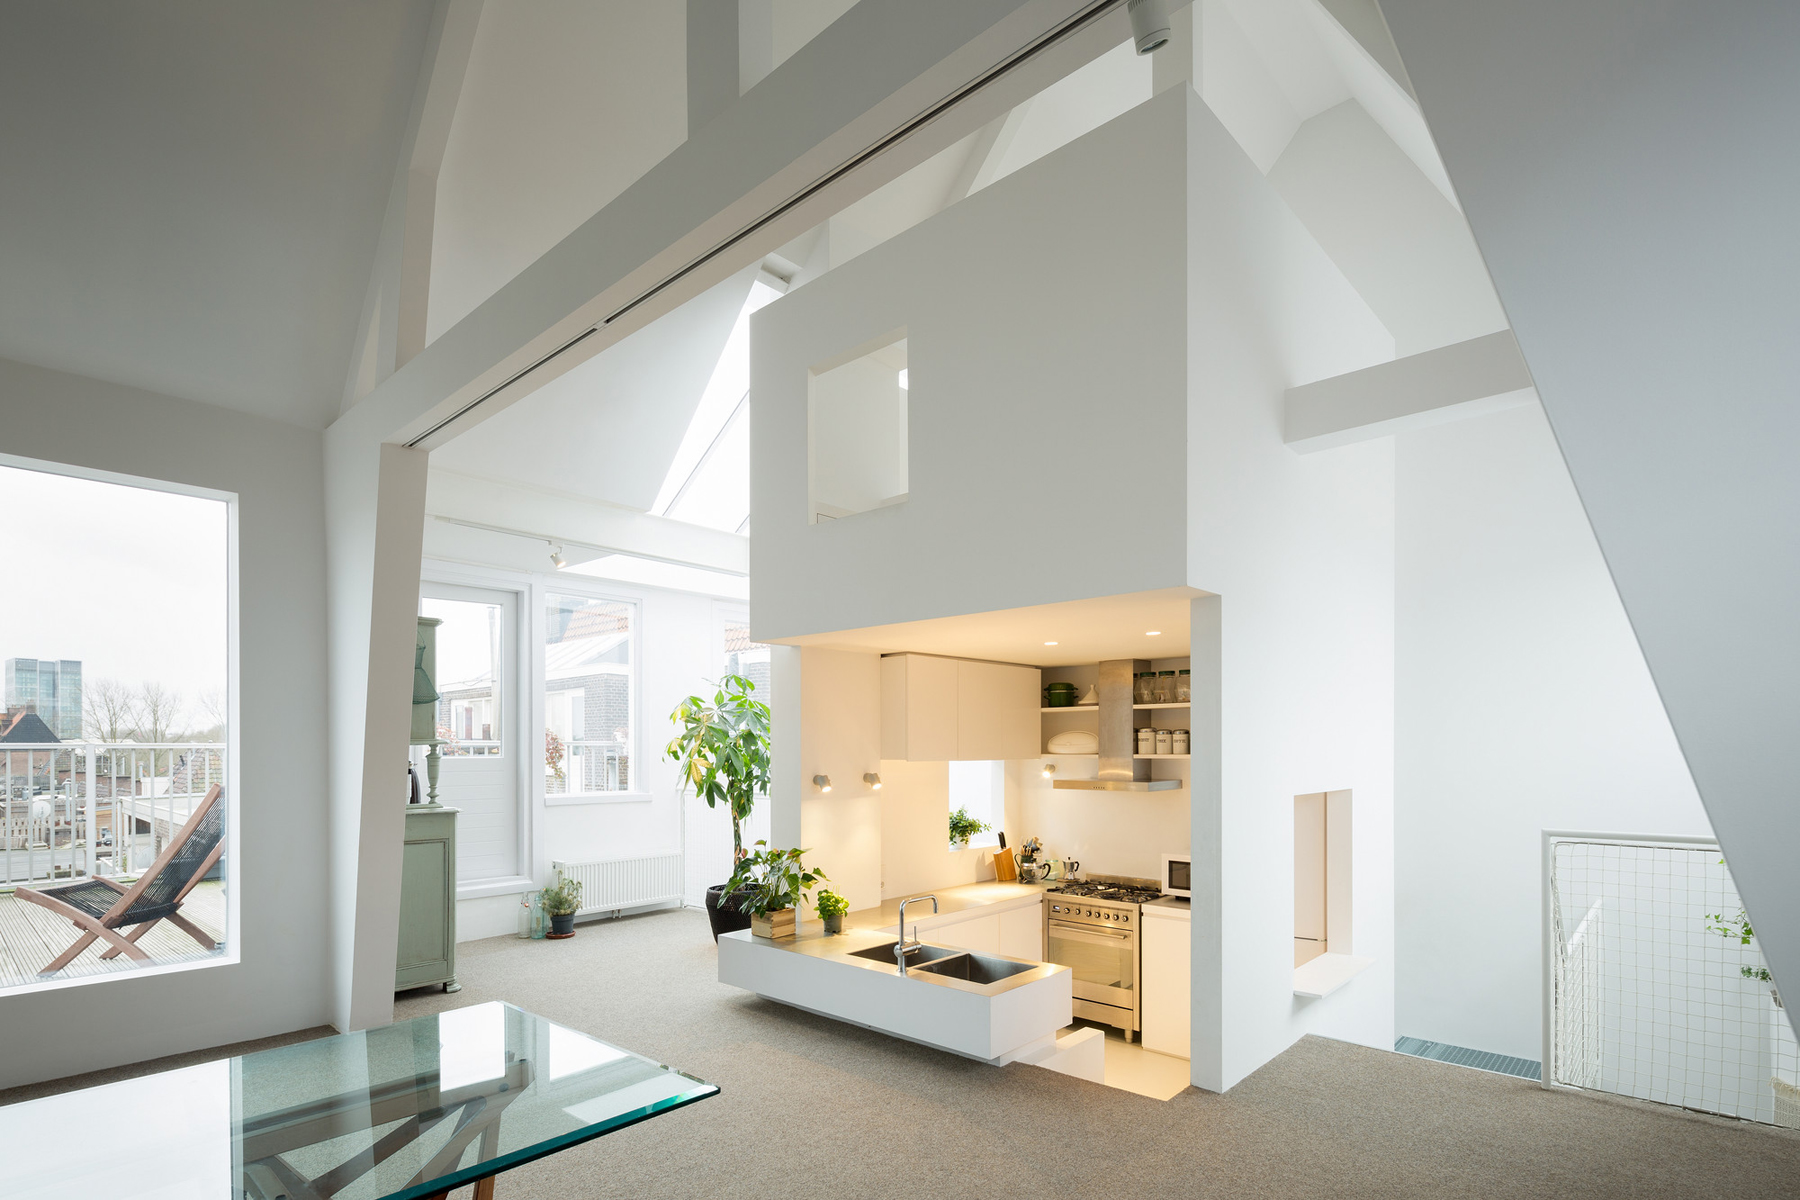 https://www.idesignarch.com/wp-content/uploads/Unique-Amsterdam-Apartment_1.jpg